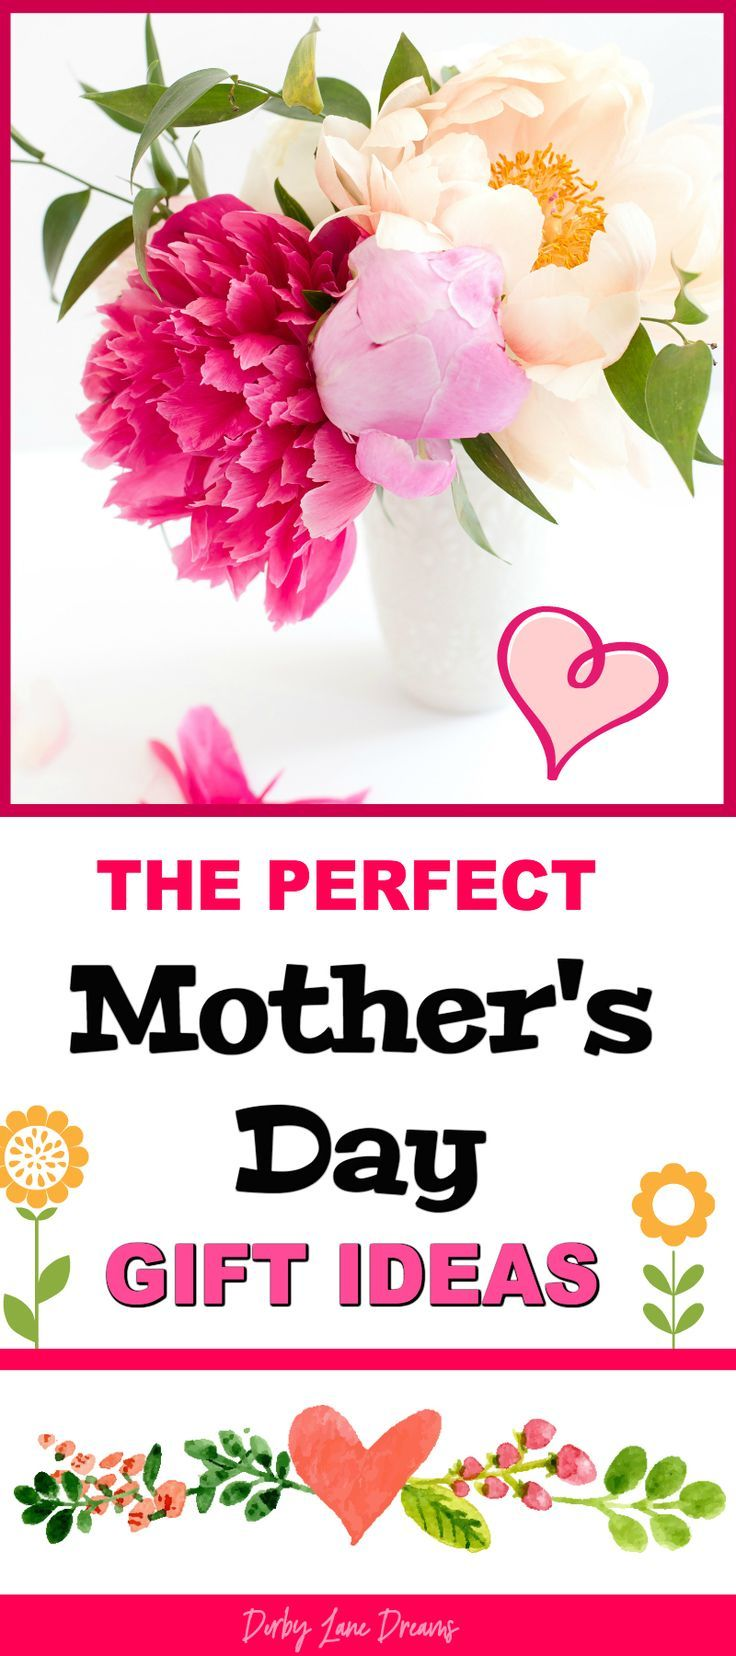 Find the Perfect Gift for your Mom, grandmother, sister, aunt, daughter, or friend.  Thoughtful and sweet Gift Ideas for every budget from Amazon. Fast and free delivery on prime. #MothersDay #Mom #momlife #mother #motherhood #happy #gift #ideas #beautiful #flowers #love #loveit #presents #instagood #interiordesign #chocolate #jewelry #diamonds #kids #daughter